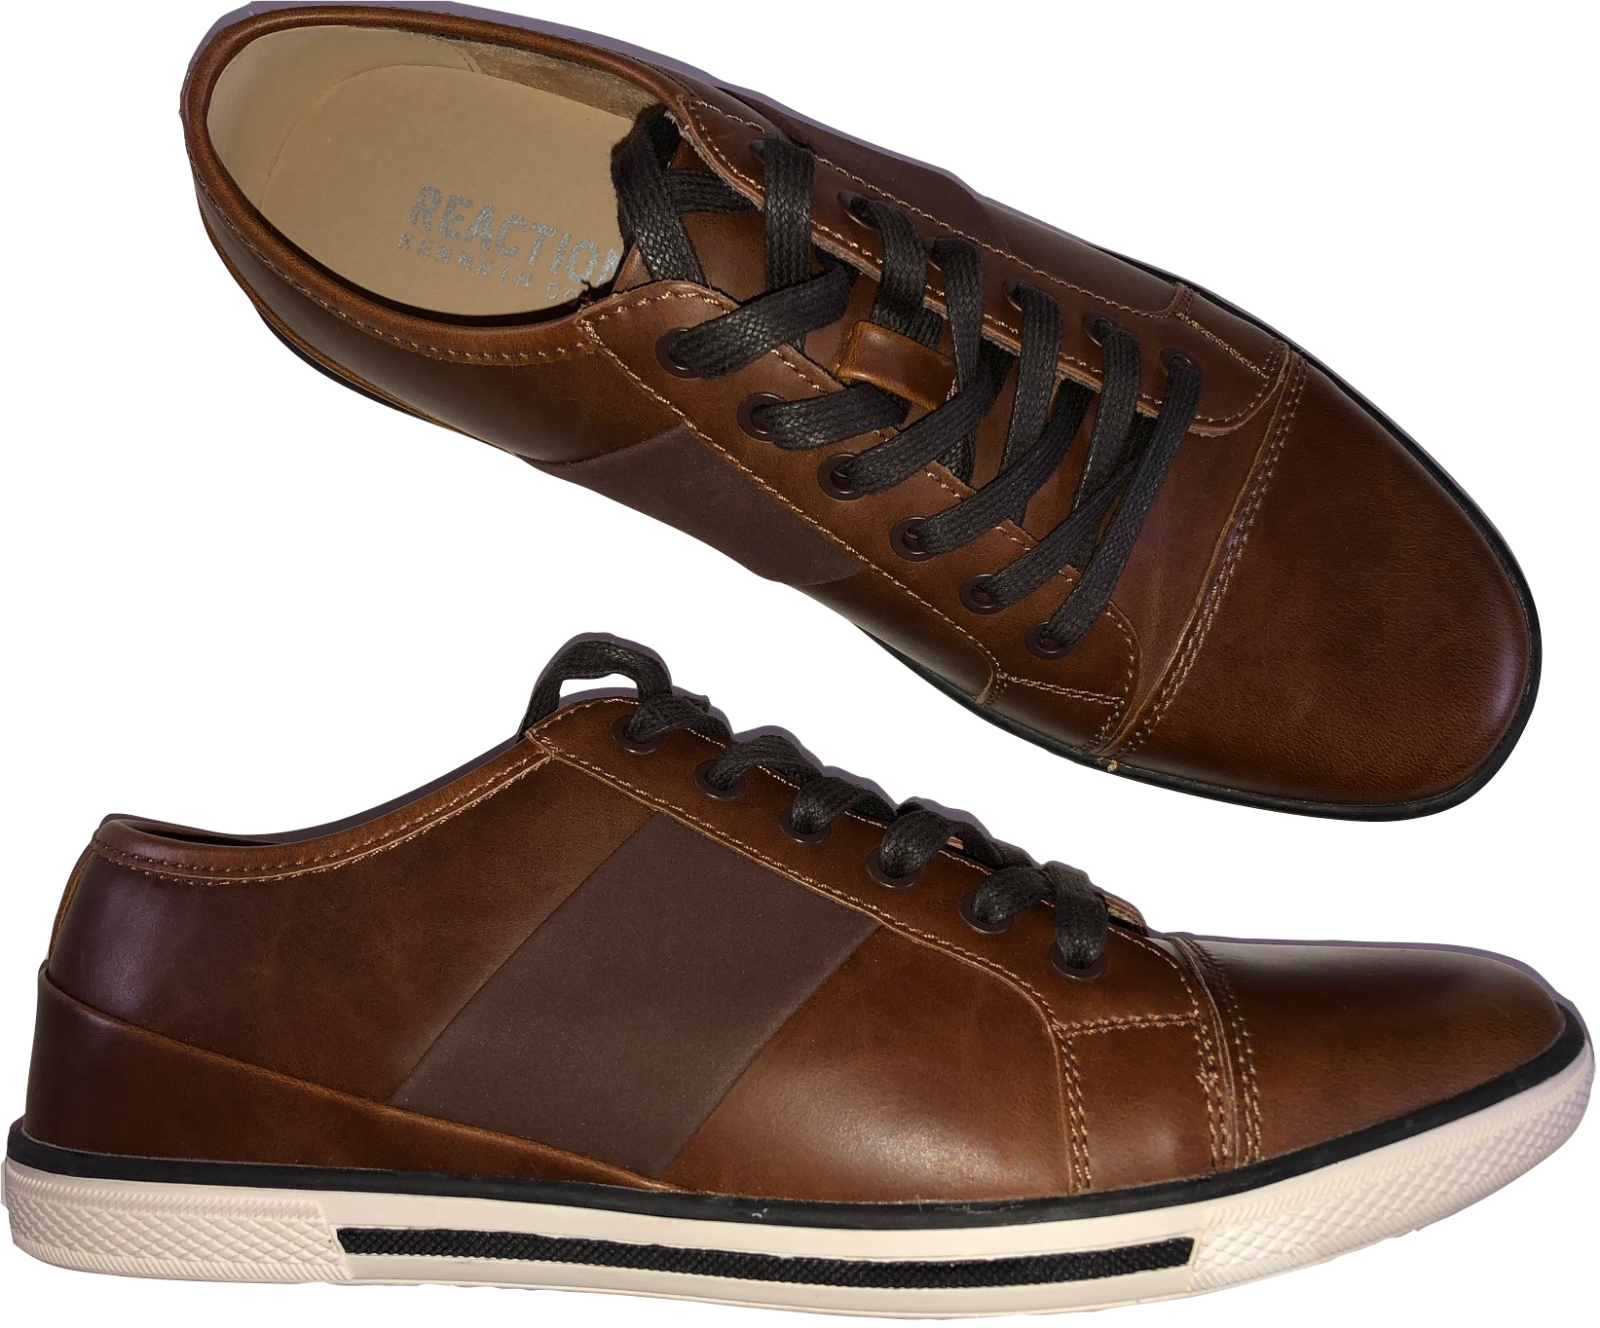 Kenneth Cole Reaction Challis Shoe Brown Leather Hand Made Upper Men's Size 9